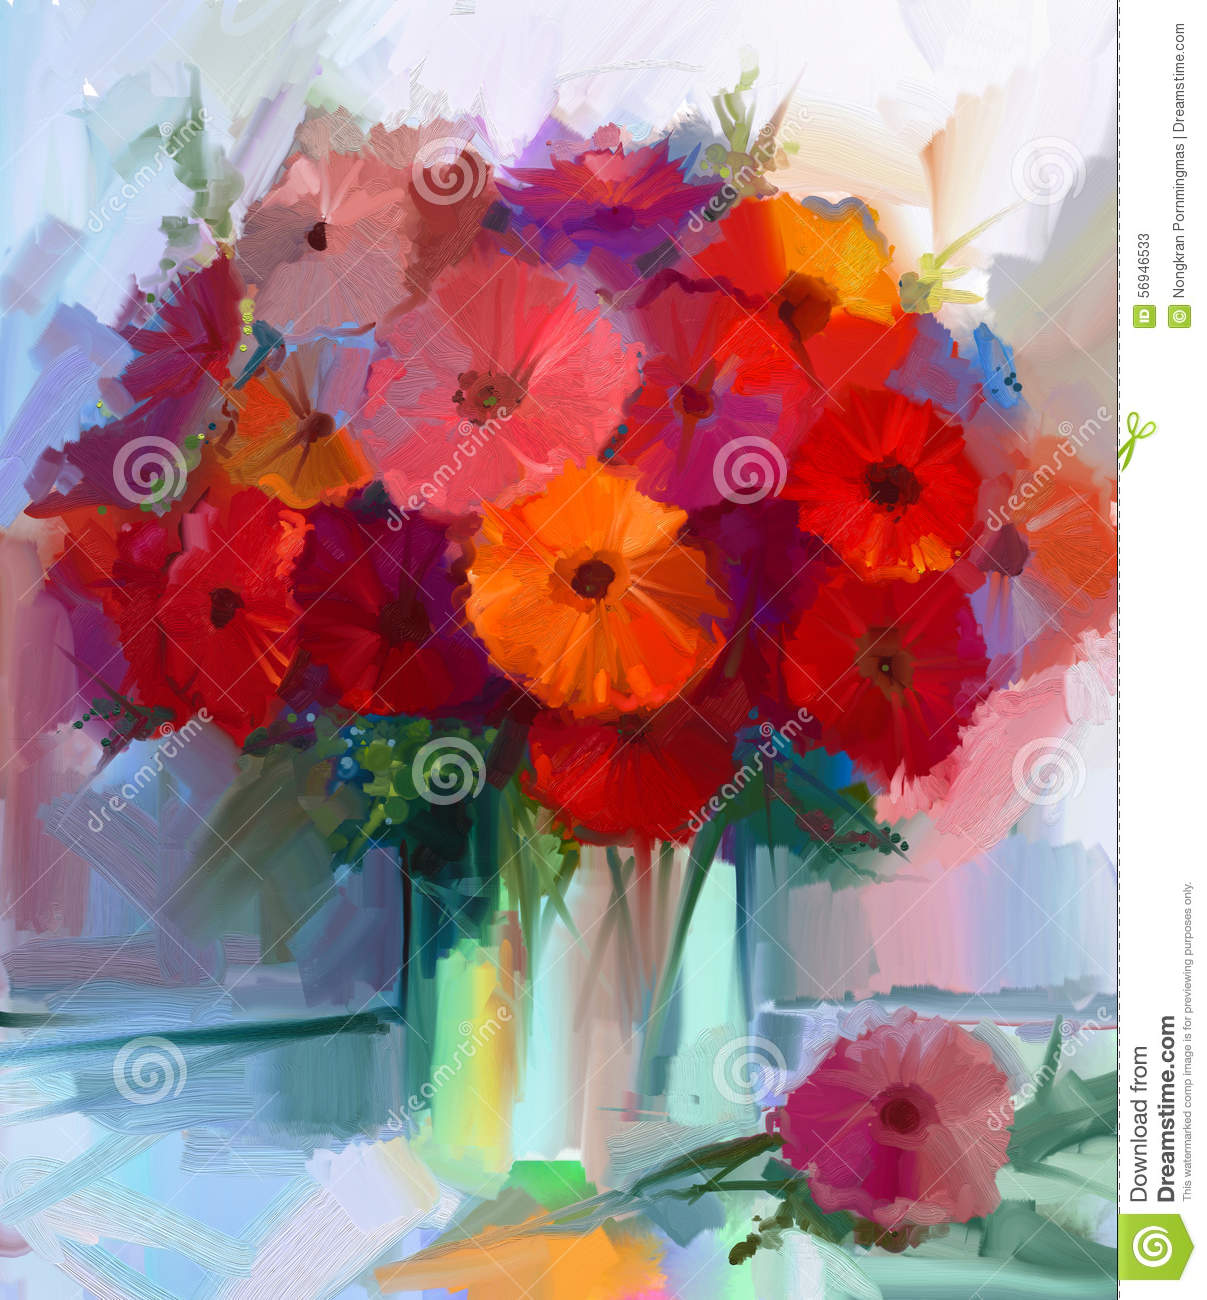 oil painting red gerbera flowers in vase stock illustration image 56946533. Black Bedroom Furniture Sets. Home Design Ideas